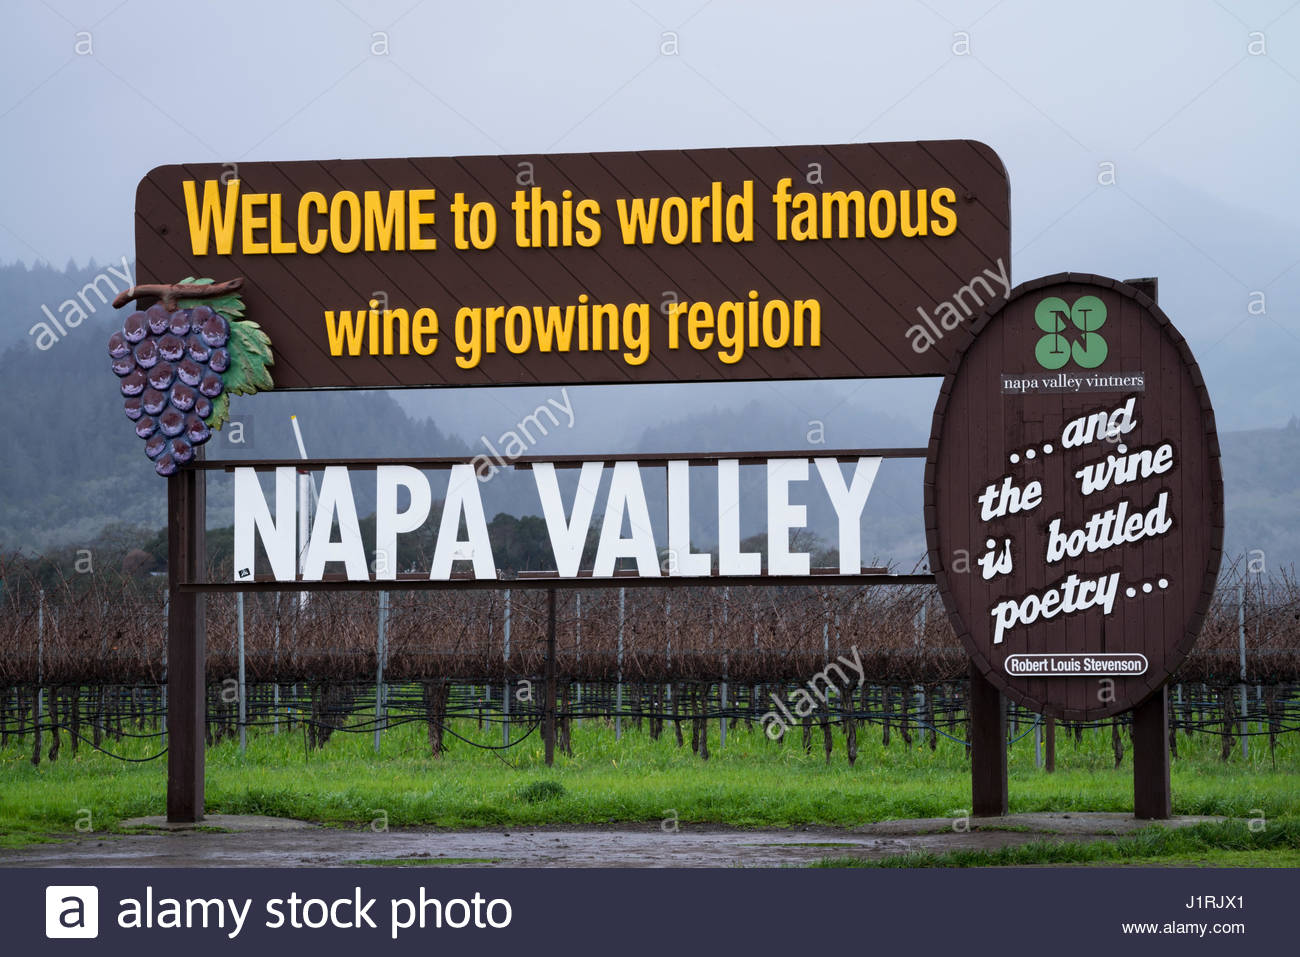 American Viticultural Area Stock Photos Amp American